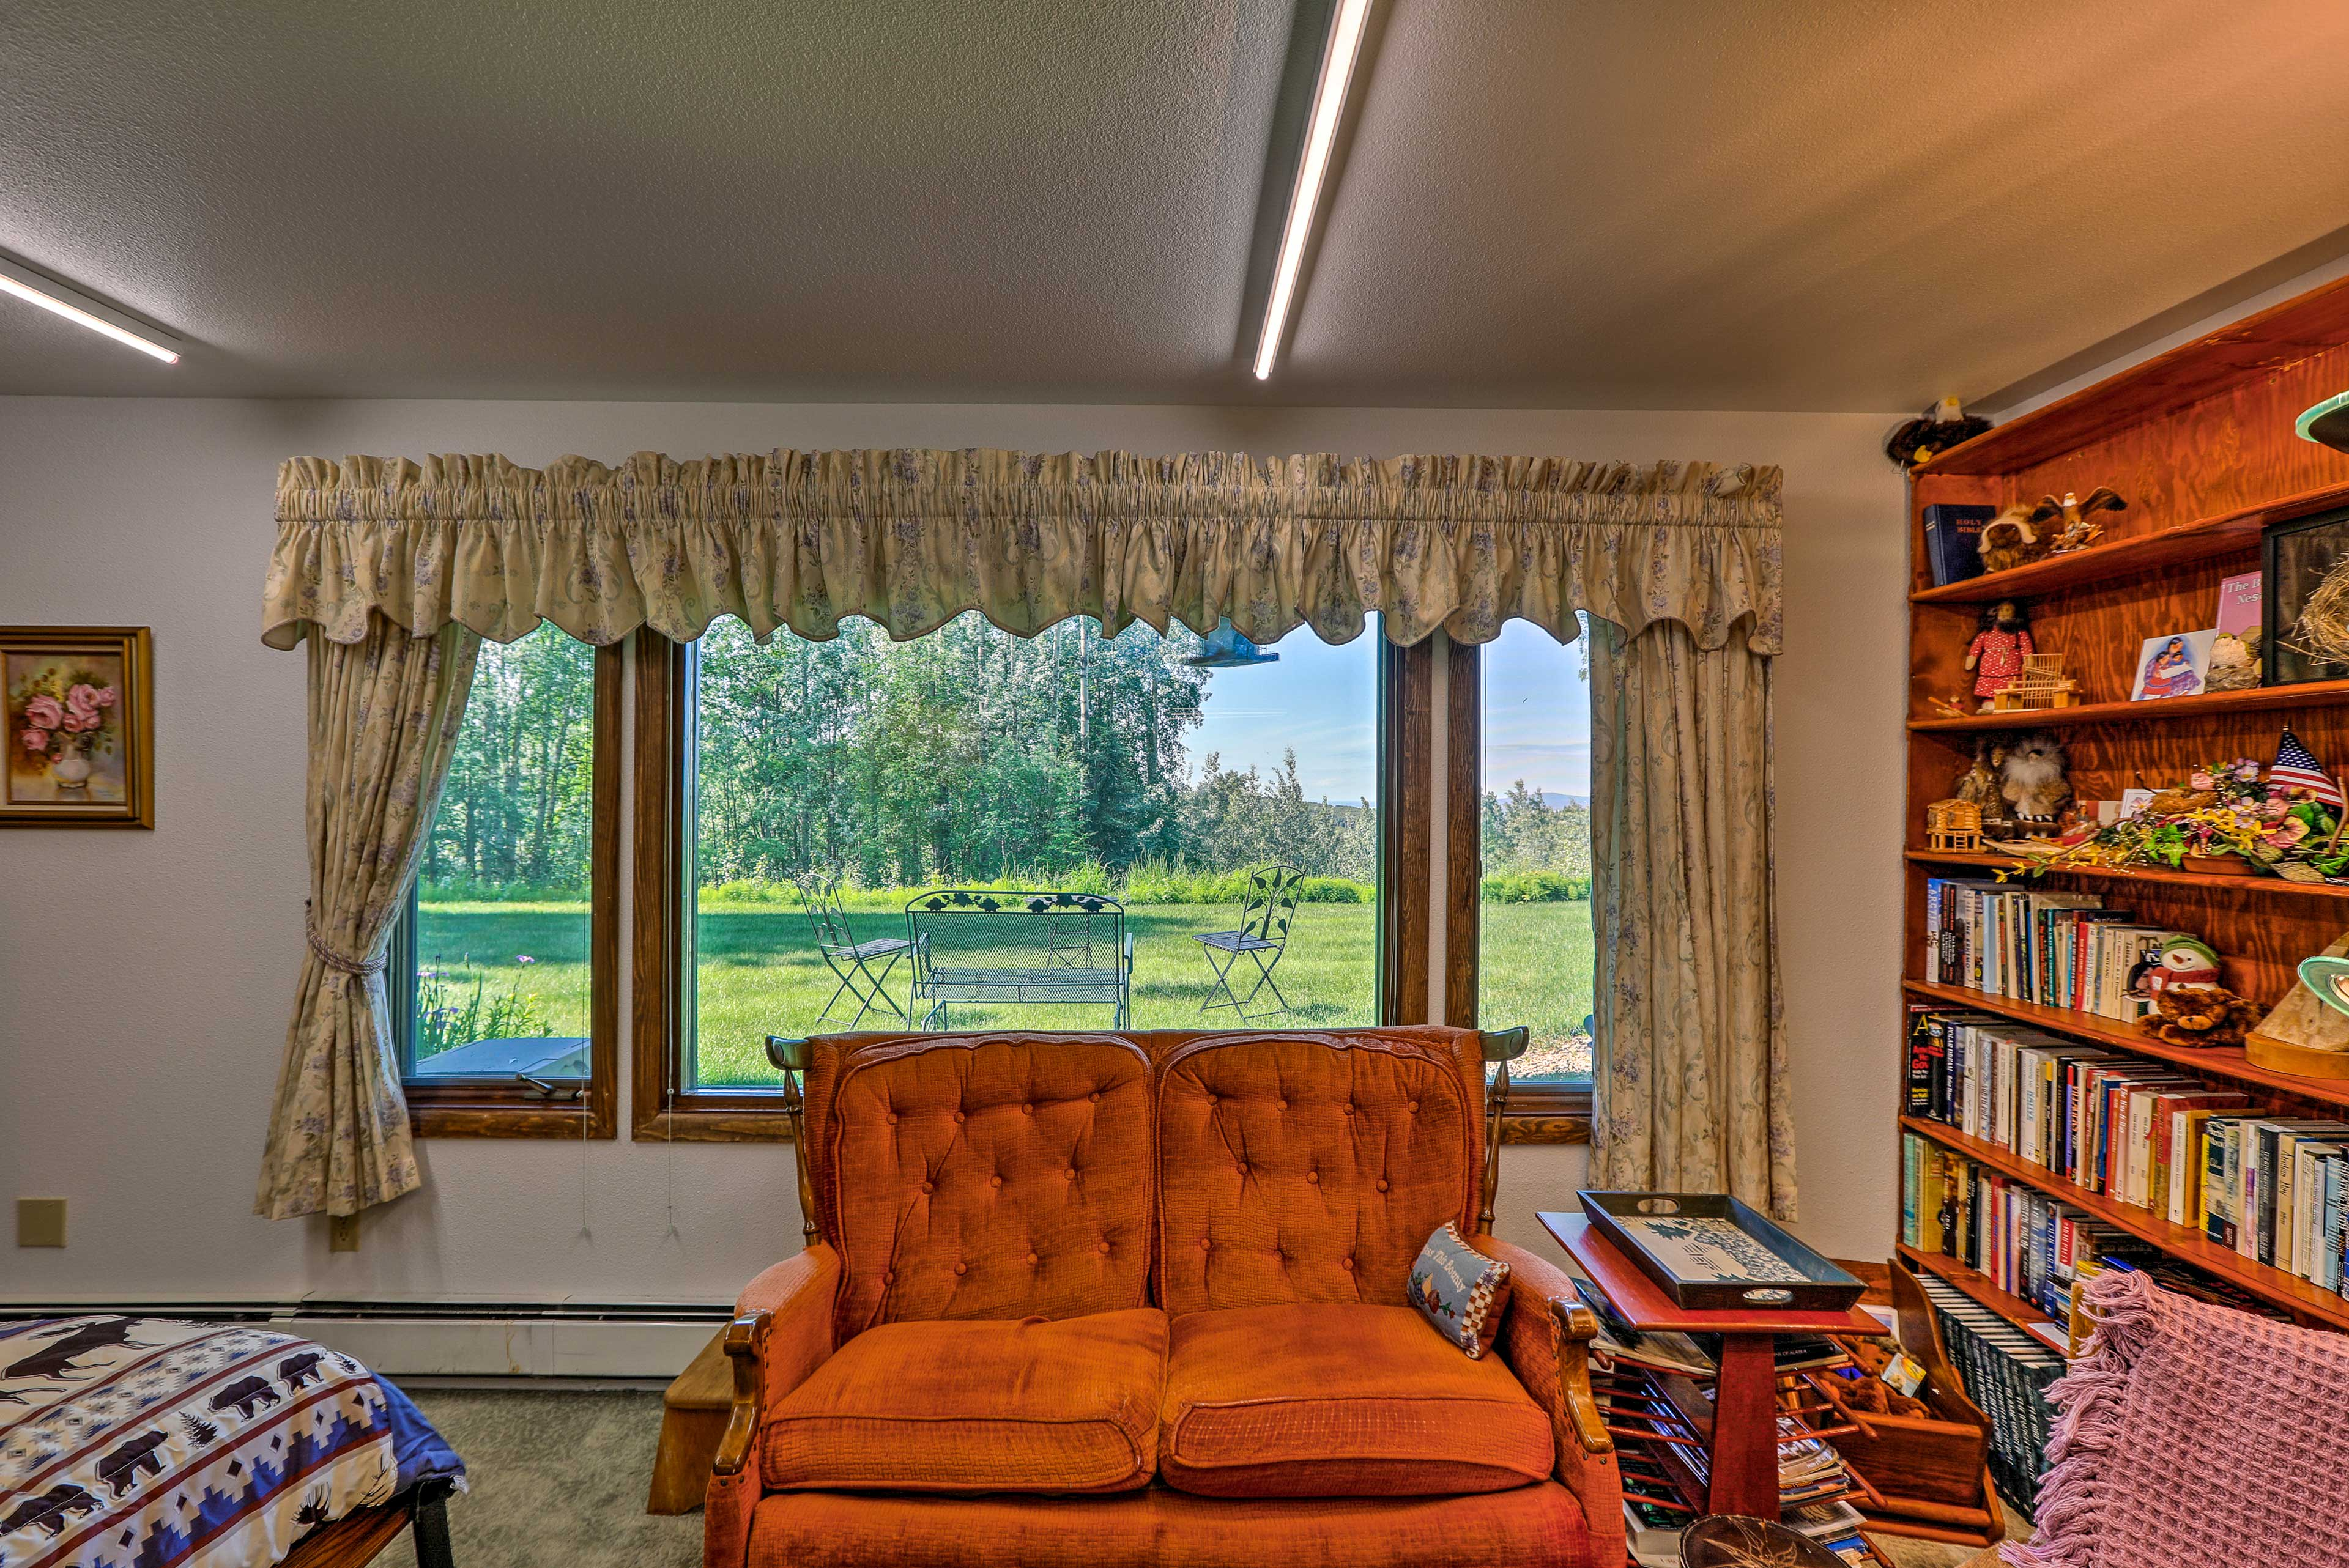 Enjoy a cup of cocoa as you rest on the rocking chair or vibrant 2-person couch.